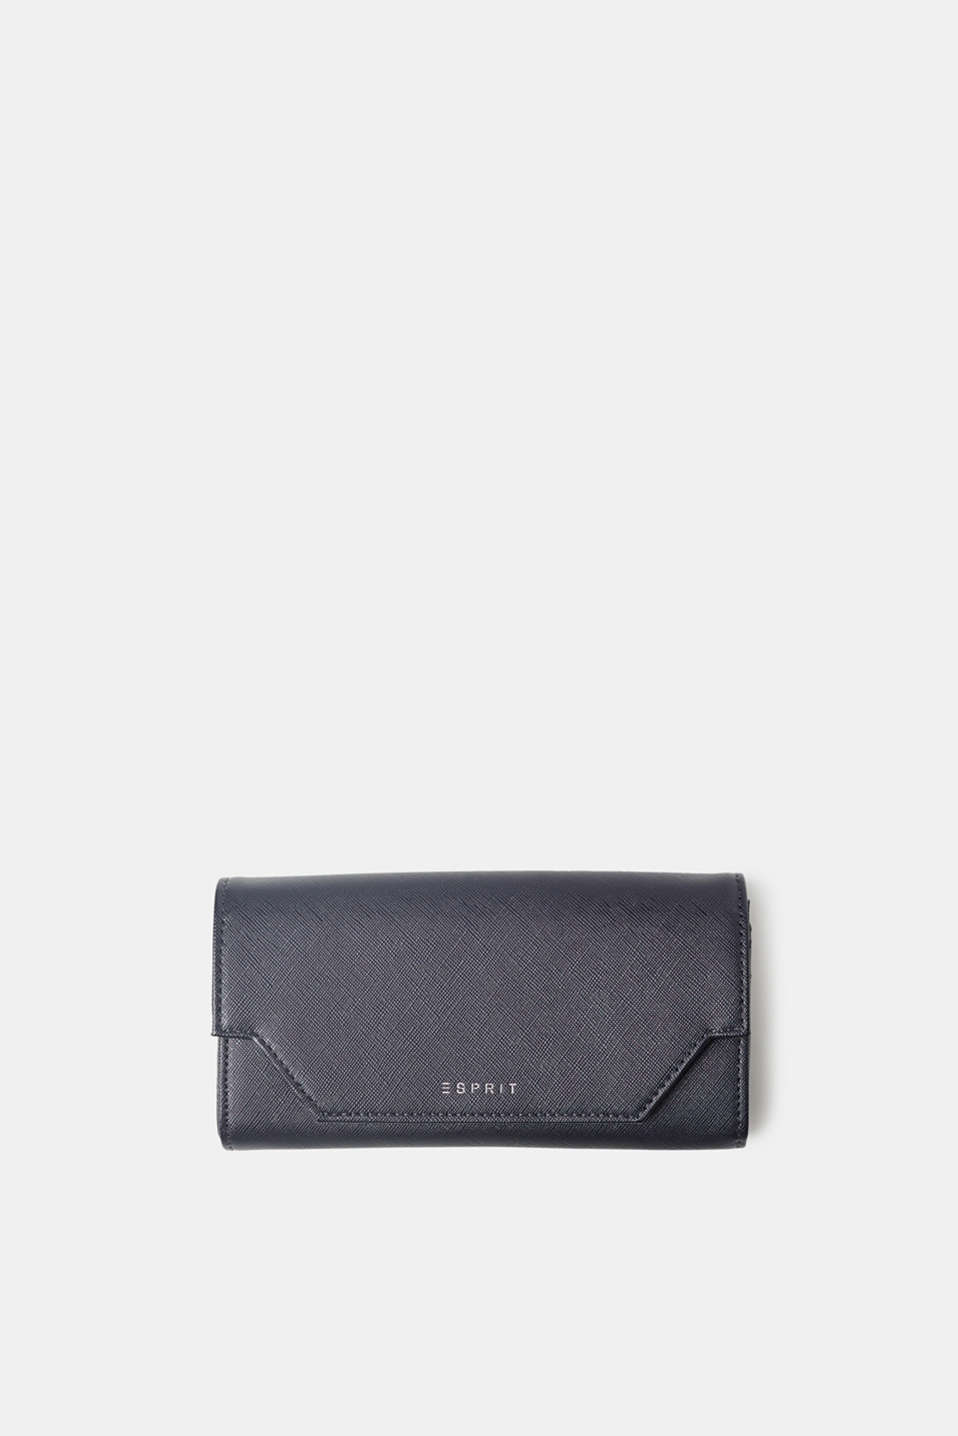 The textured faux leather and stunningly moulded flap give this waiter-style wallet an exciting look.